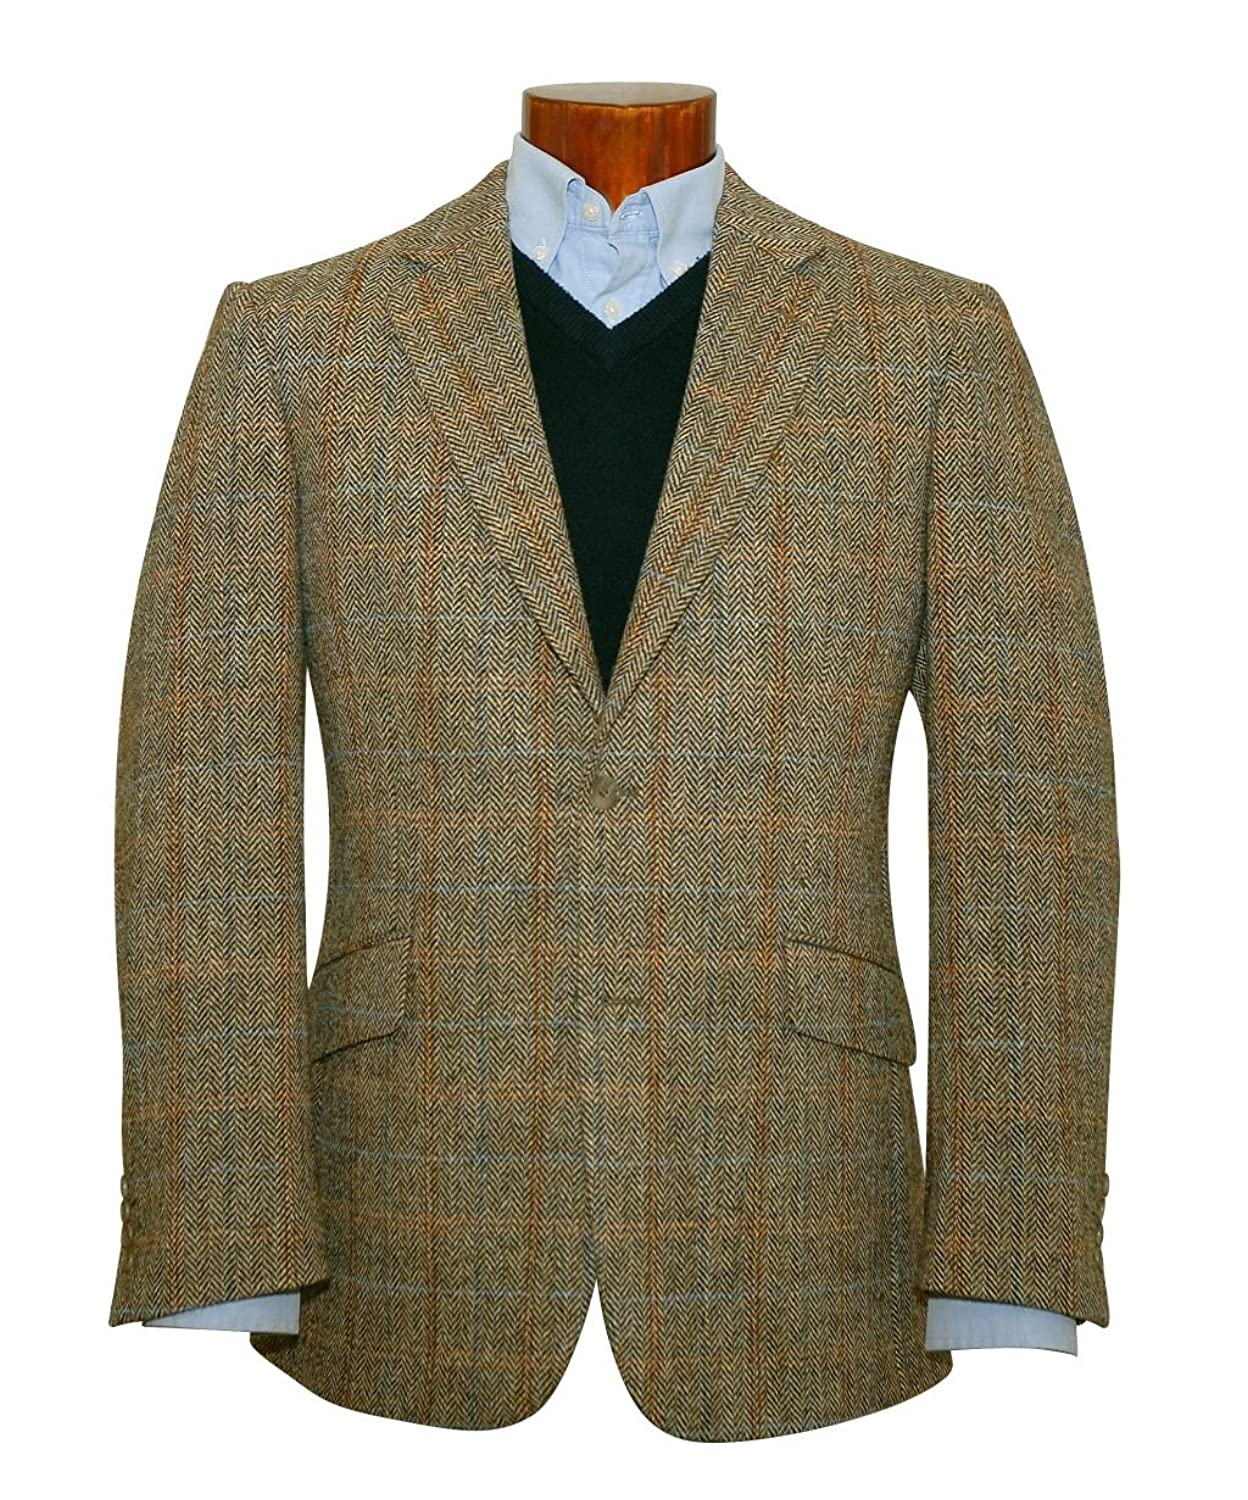 1900s Edwardian Men's Suits and Coats Harris Tweed Hamish Wool Jacket $380.00 AT vintagedancer.com